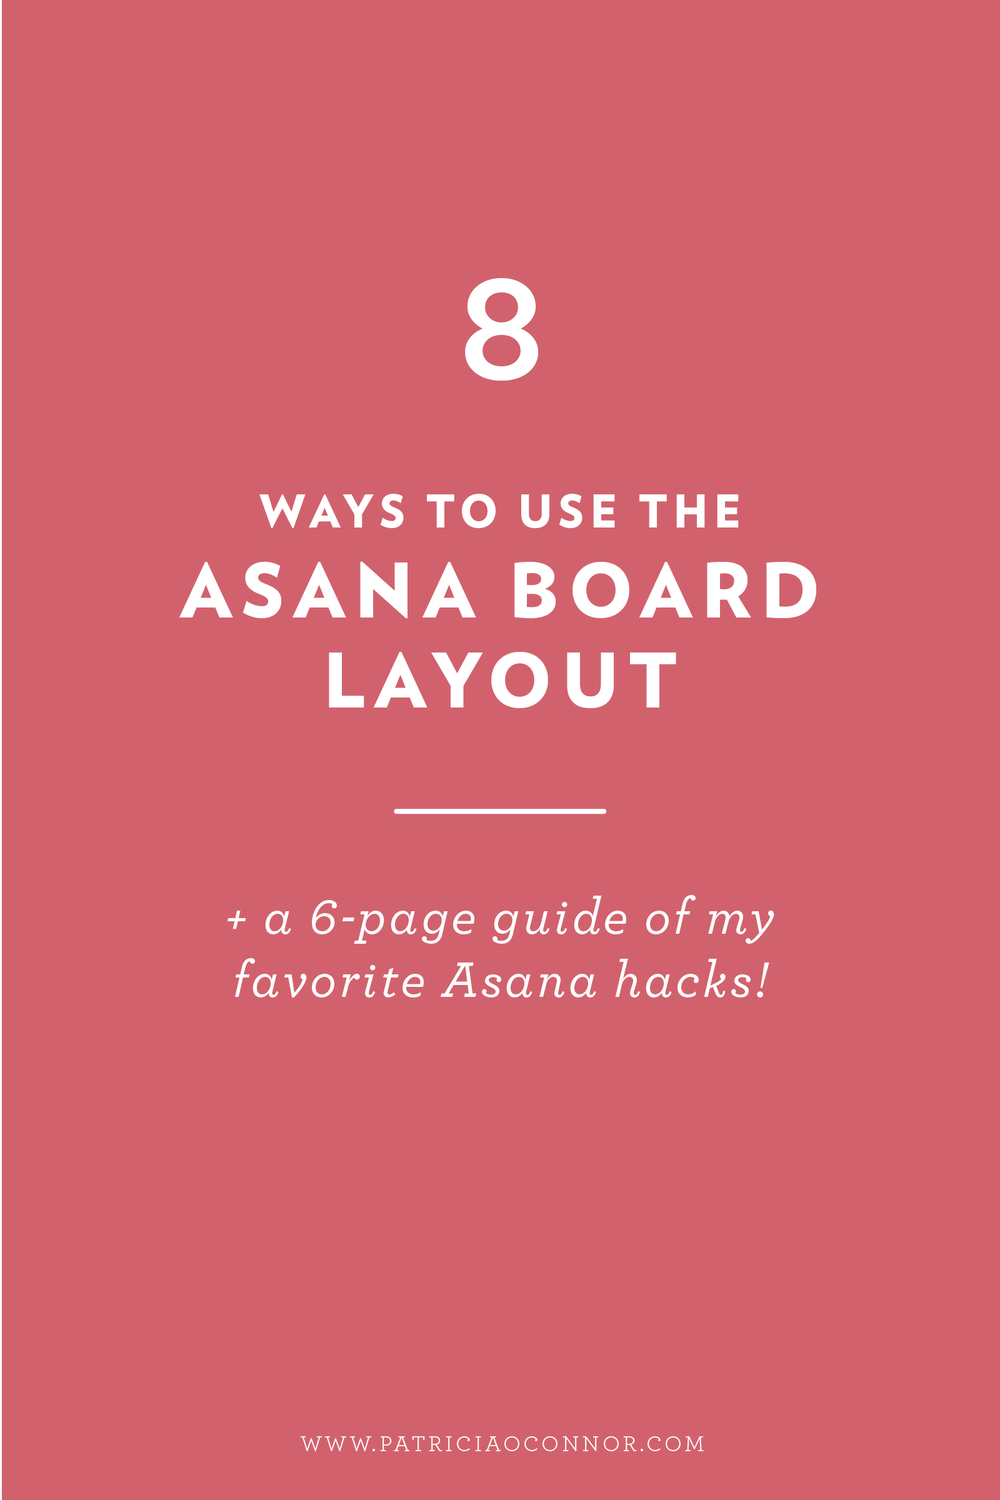 Learn how to use the new Asana board layout!